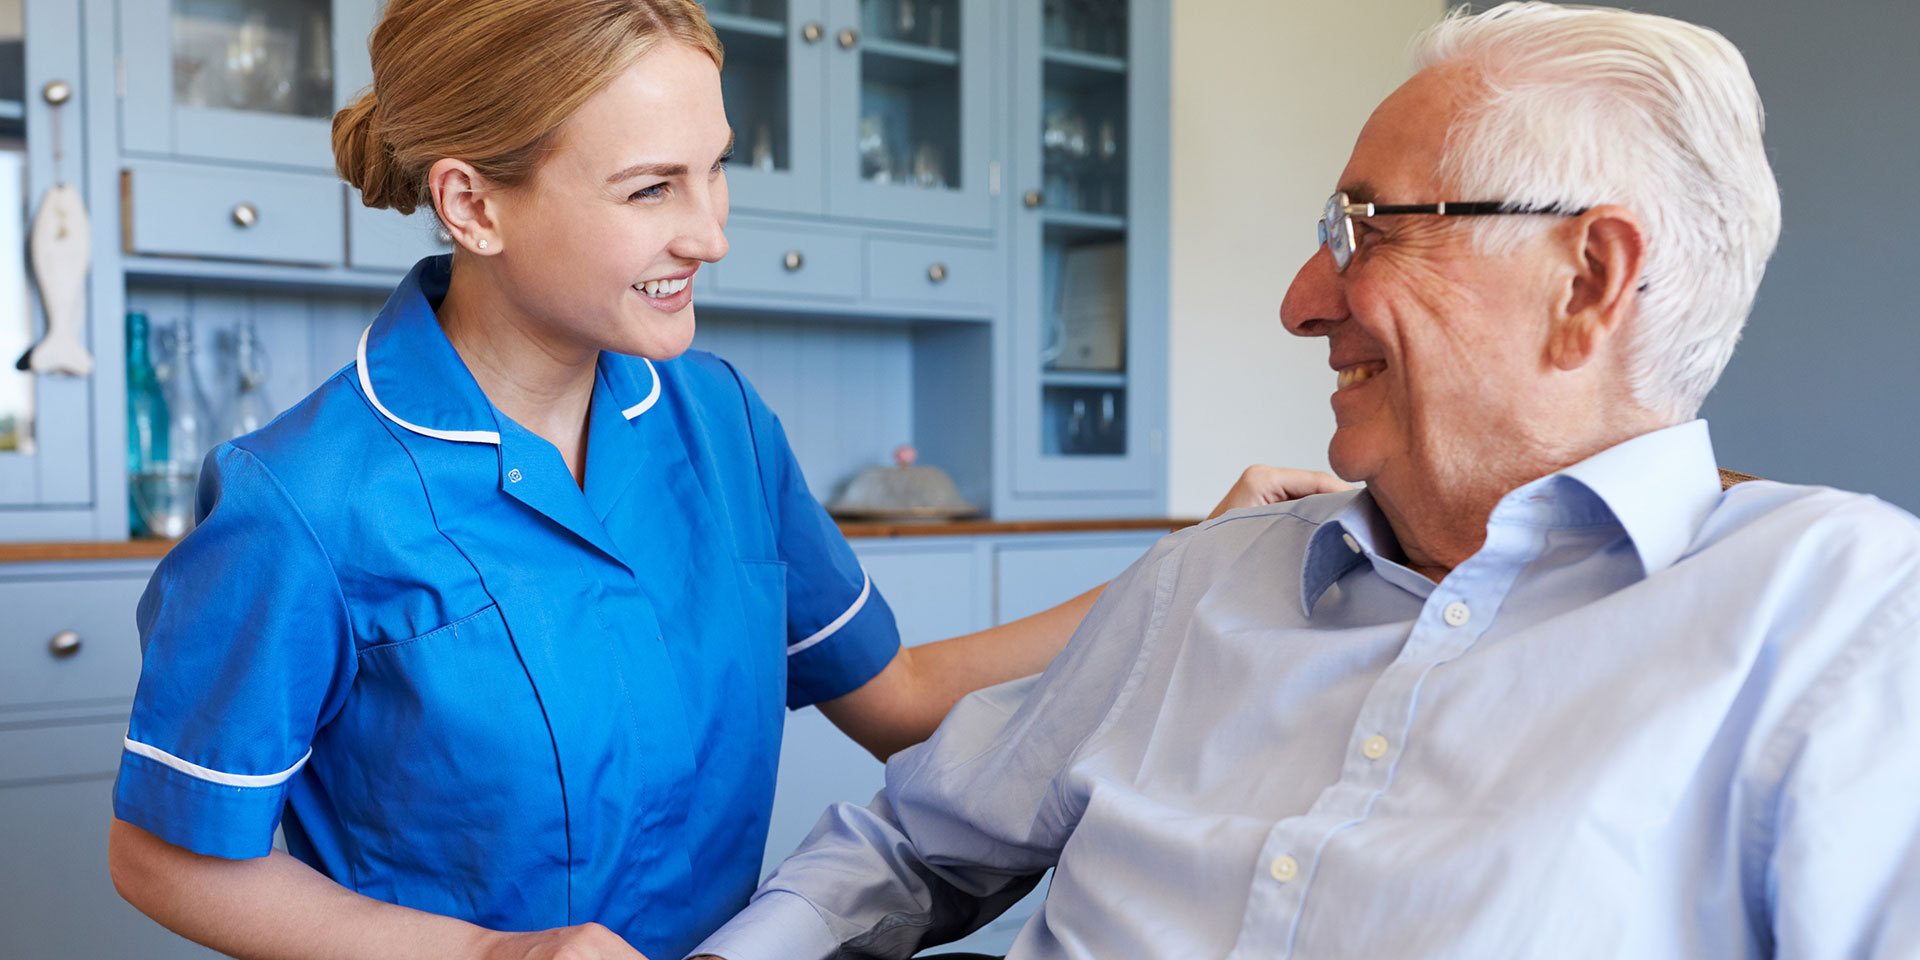 Nurse with pensioner. We supply nursing and healthcare staff for temp or permanent positions across the UK